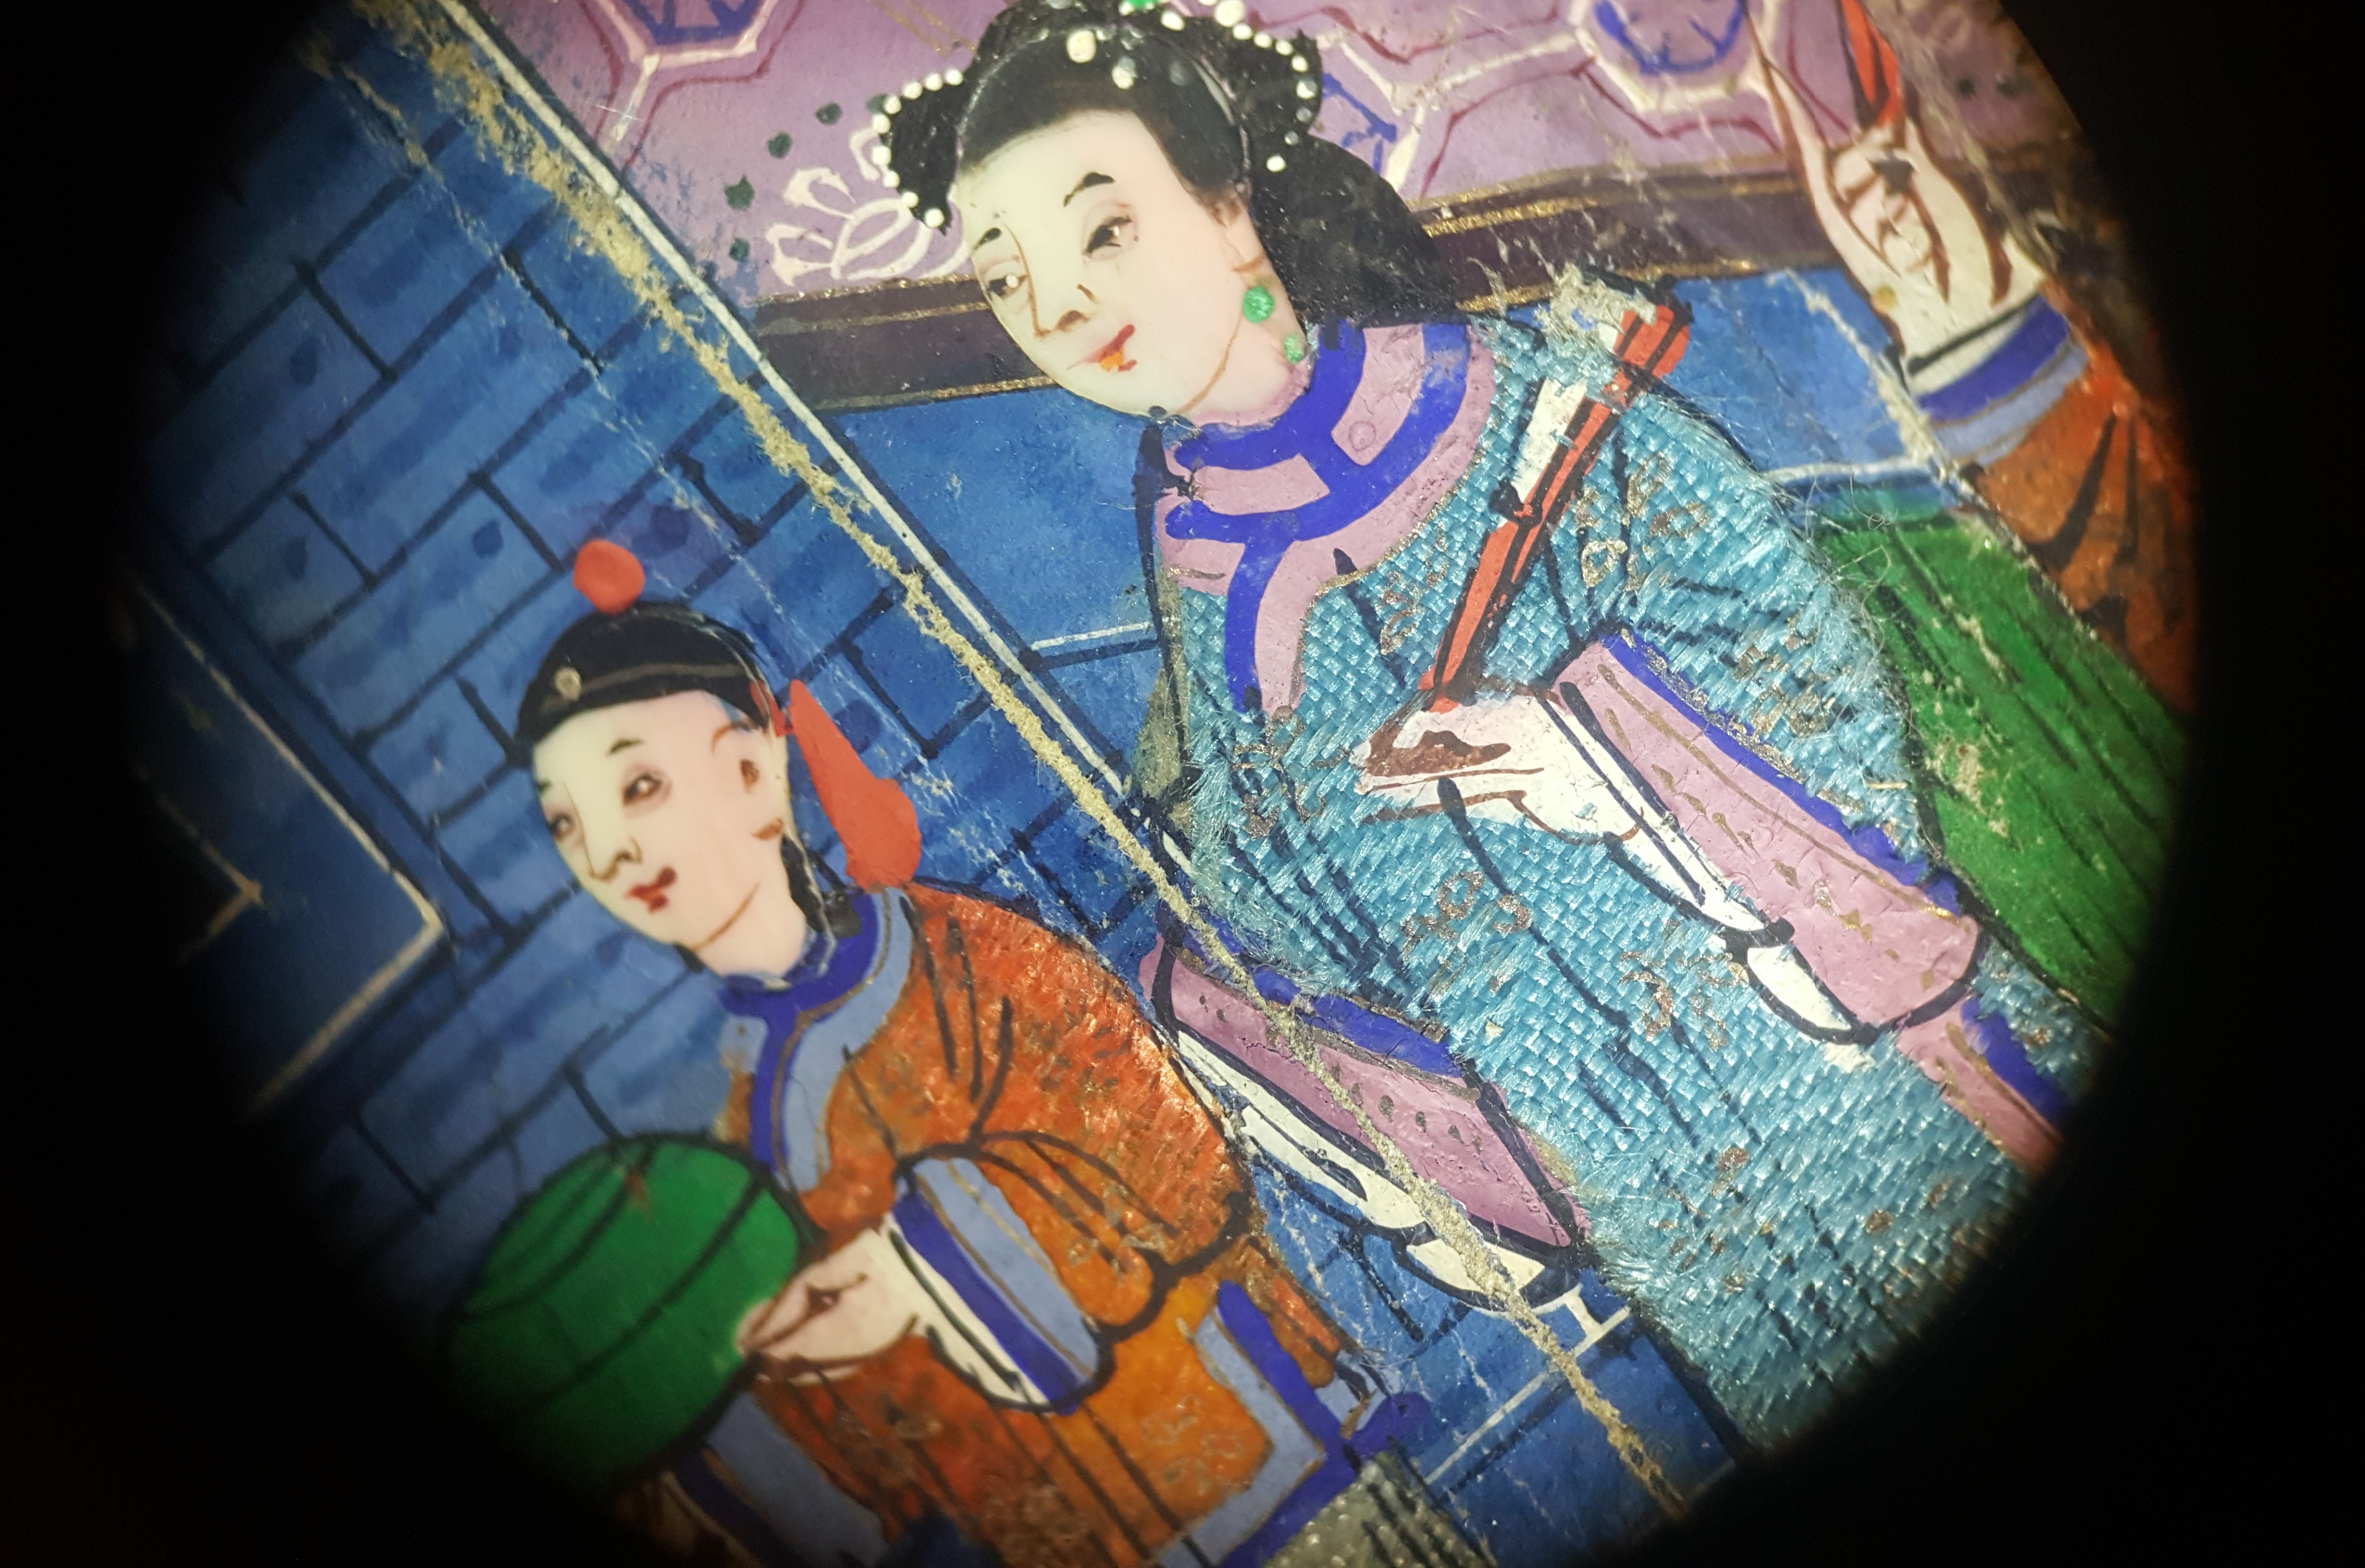 A close detail of two small figures on the fan, of a young man in an orange robe and a woman in a blue robe in front of a blue wall, showing the finely painted woven textile and ivory faces